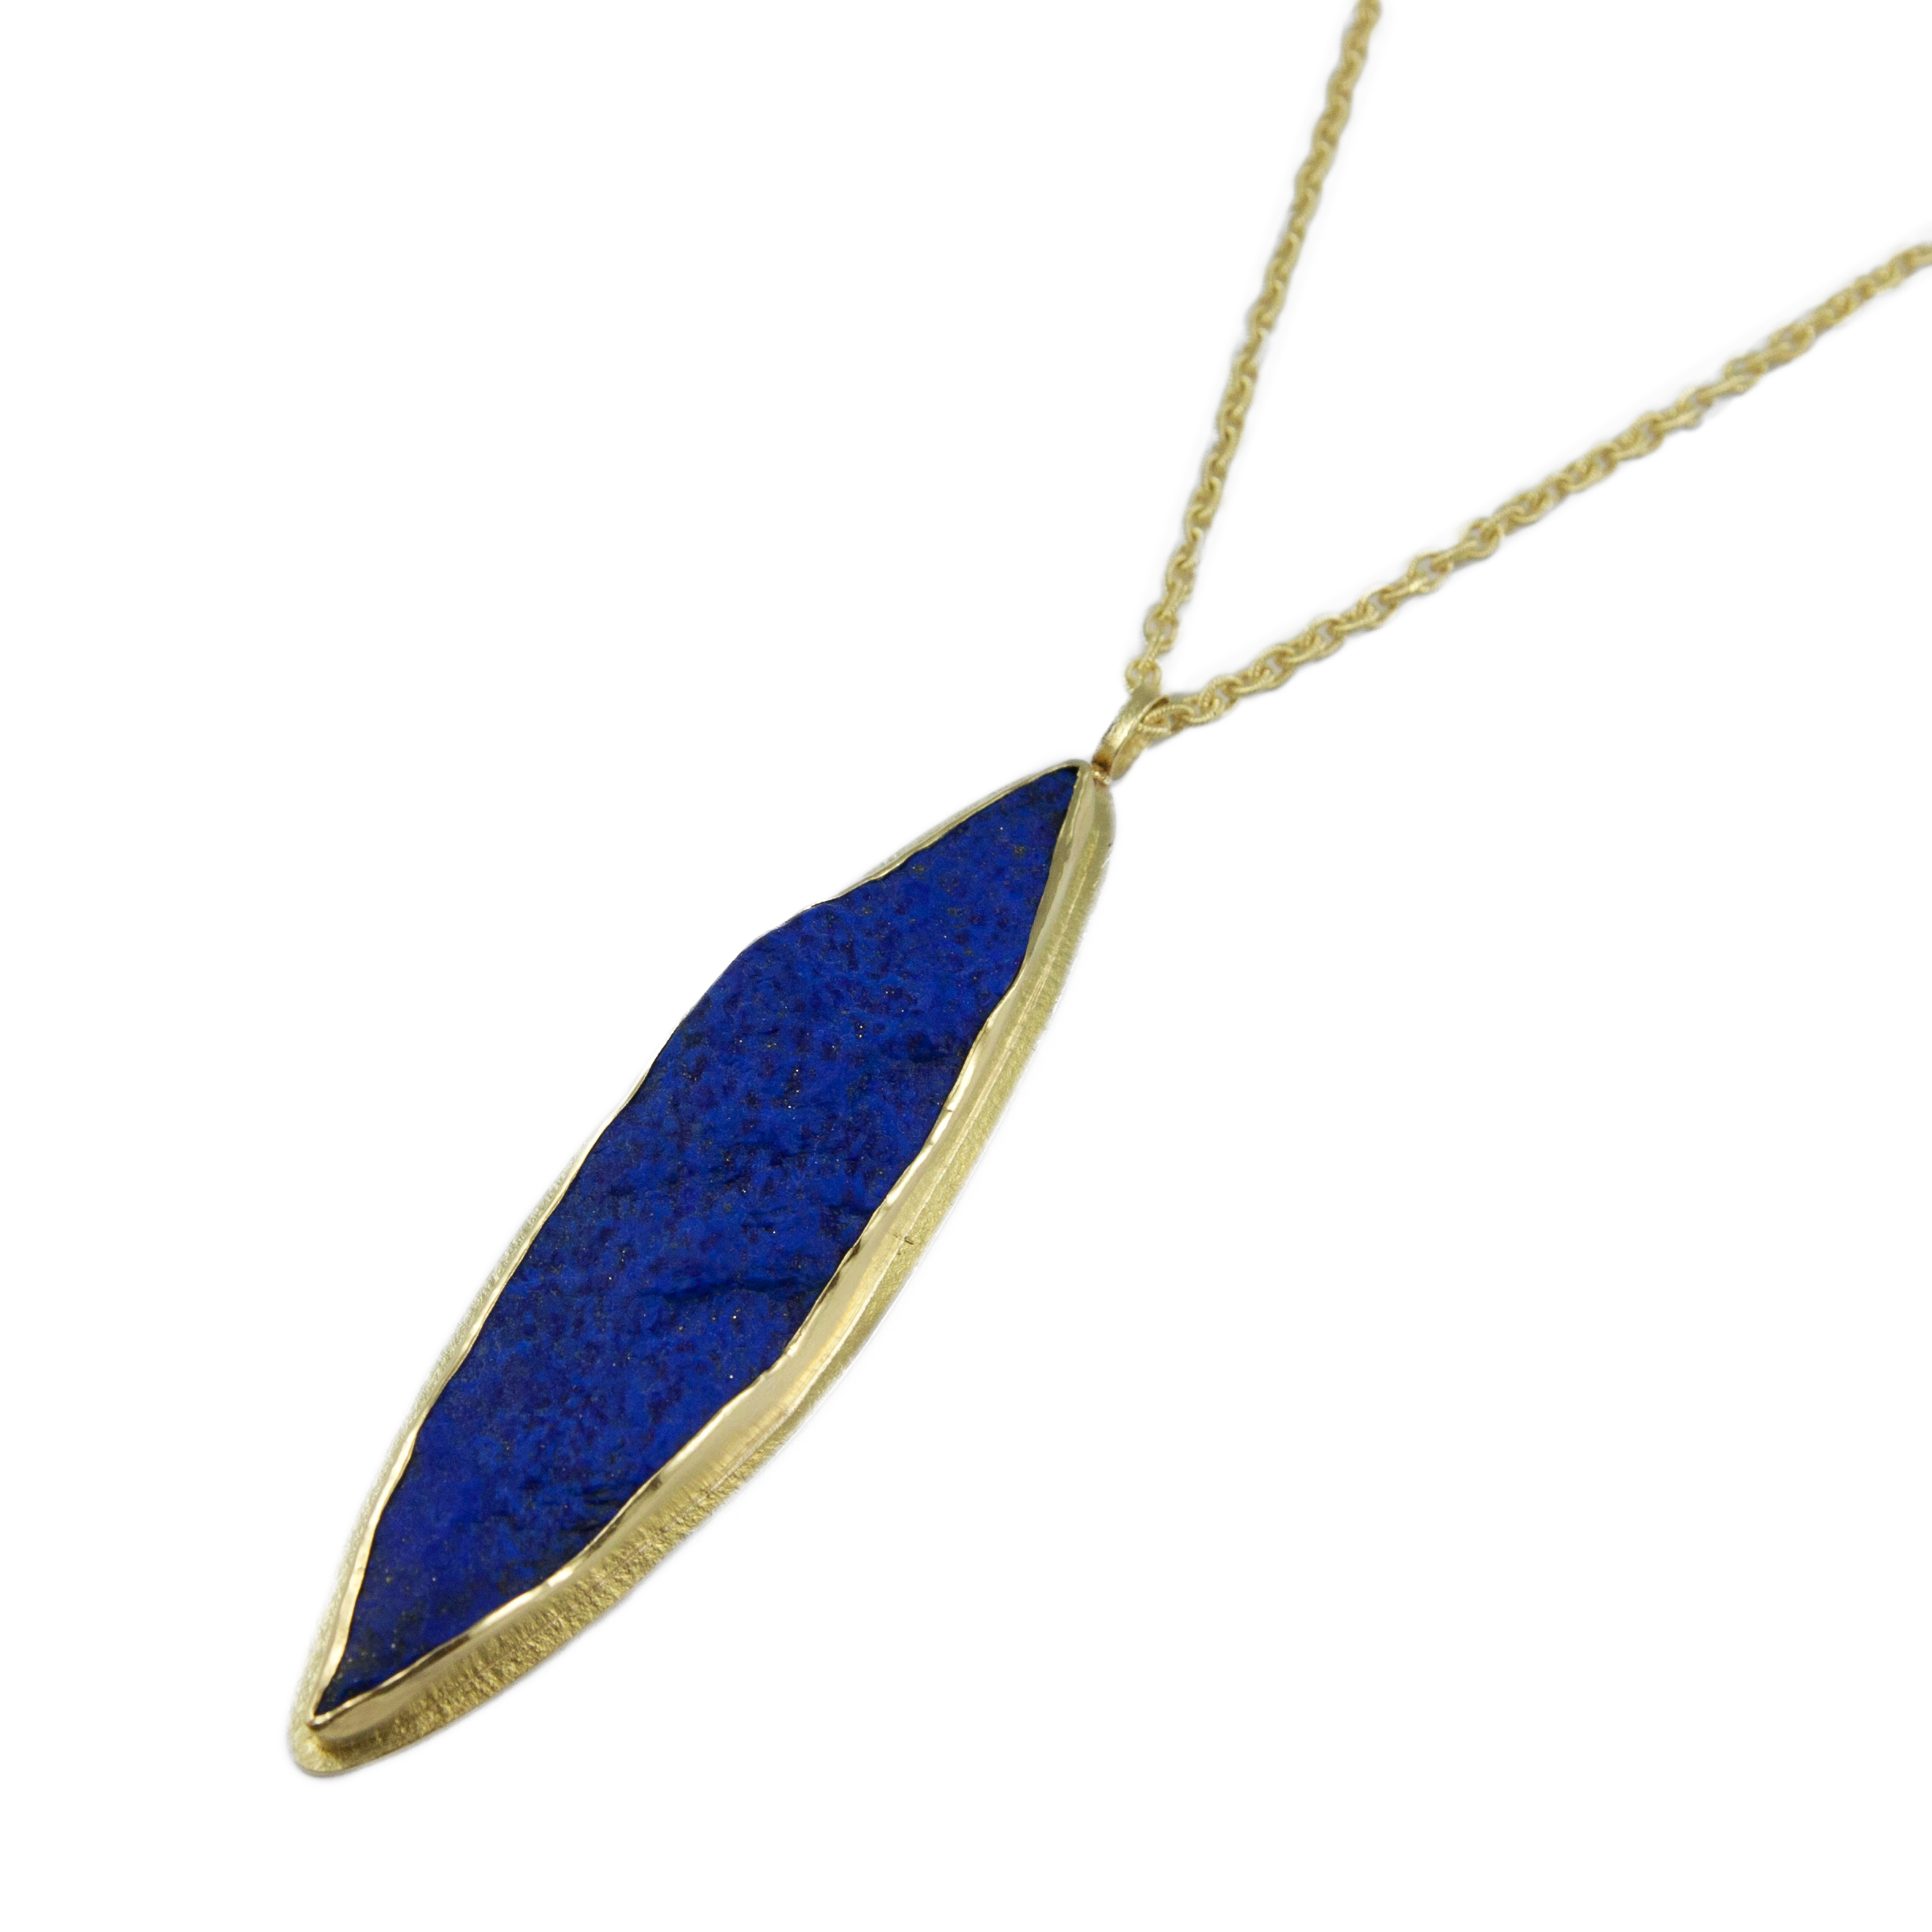 SIMPLE lg rough lapis pendant 2 EDITED.jpg